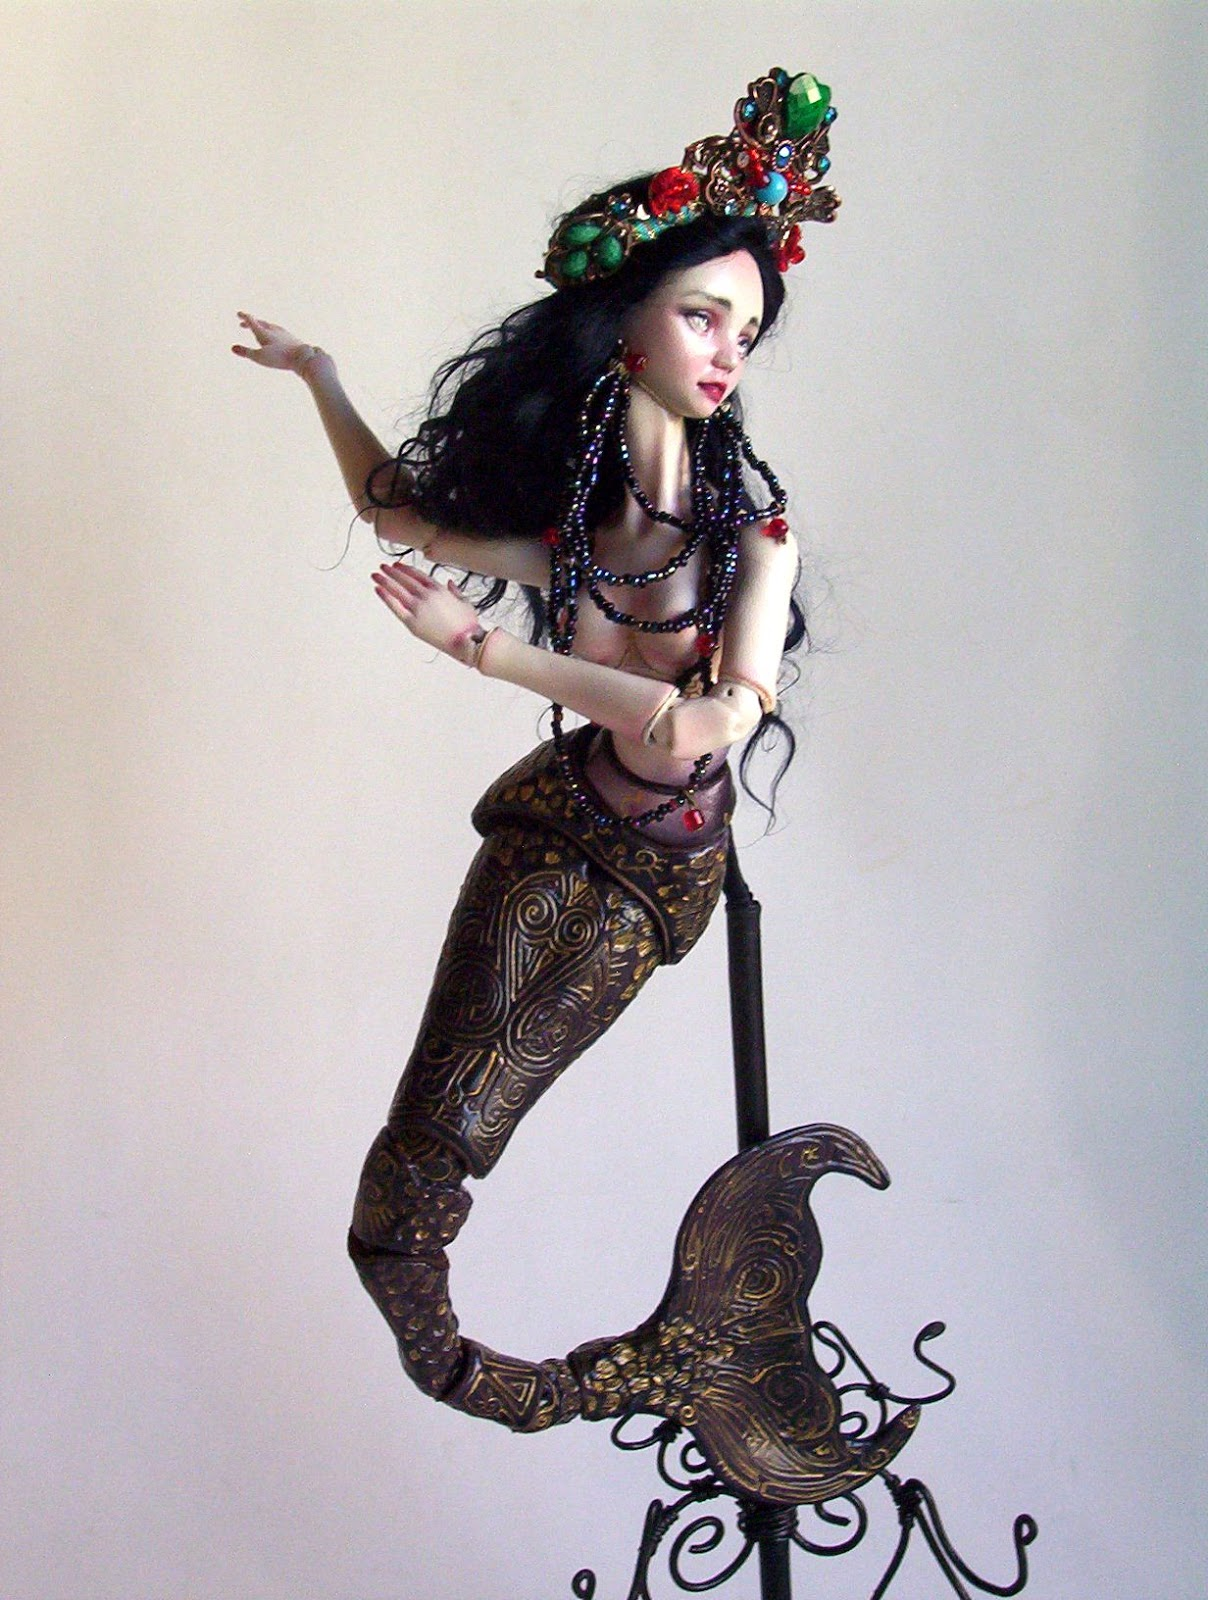 The mermaid queen, a porcelain bjd doll by amado gravagno